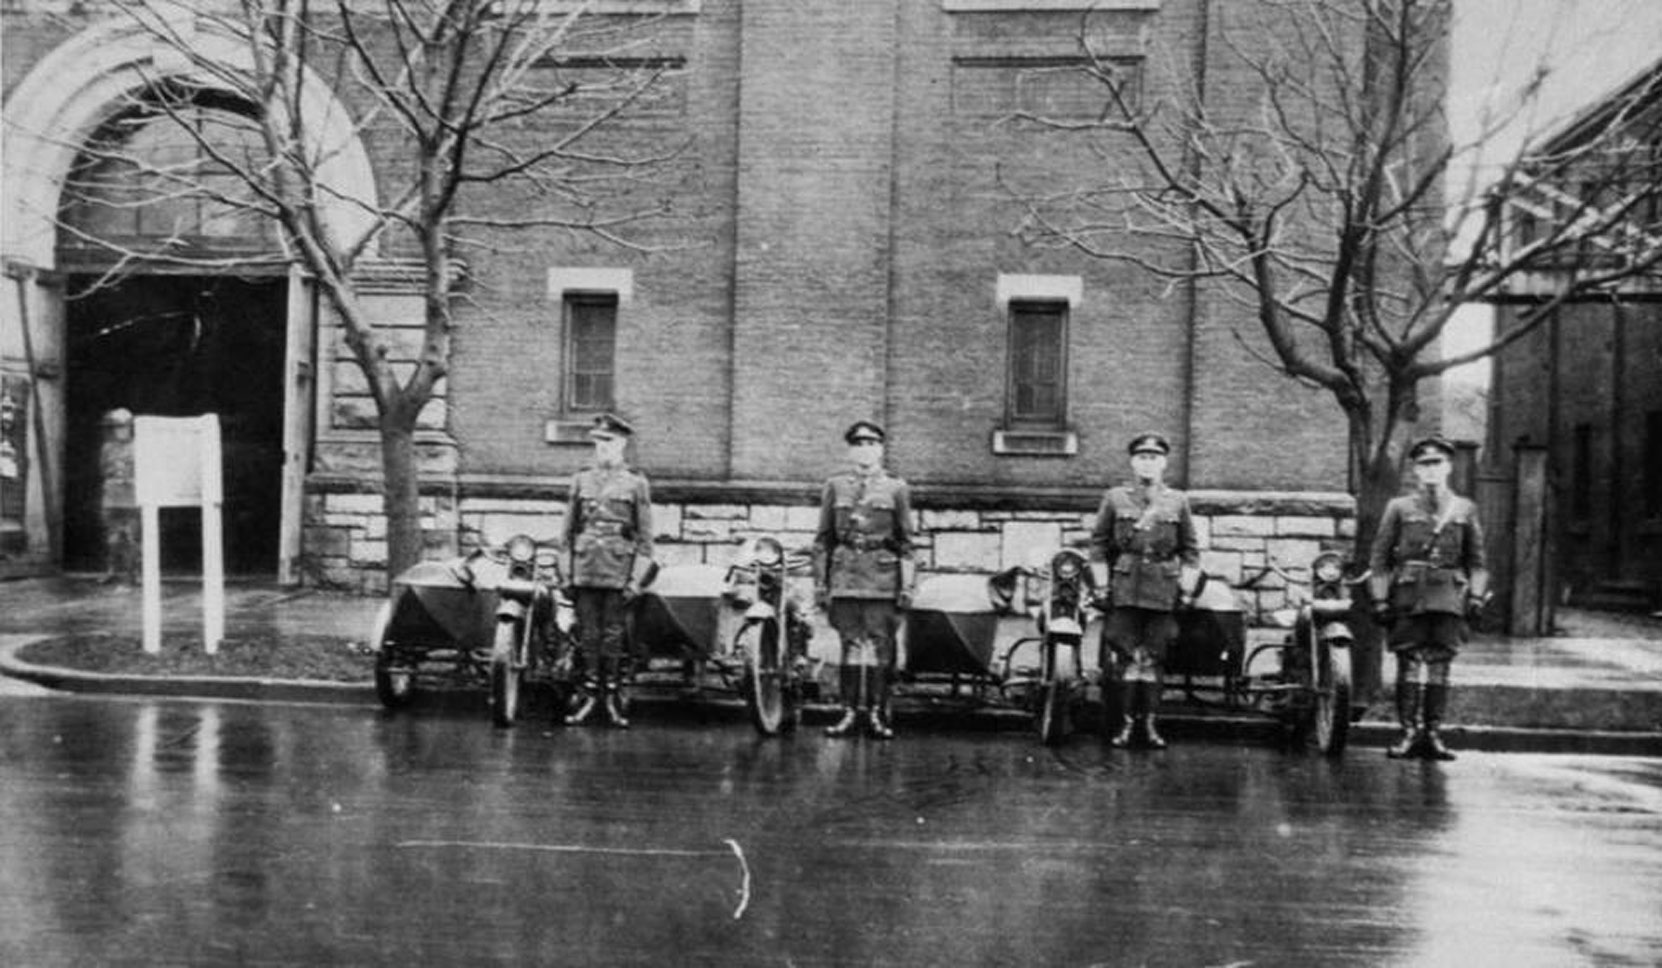 William Percy Aylward (left) with other members of the B.C. Provincial Police motorcycle squad in front of former drill Hall on Menzies Street in Victoria, circa 1926 (photo courtesy of Rick Aylward, used with permission)